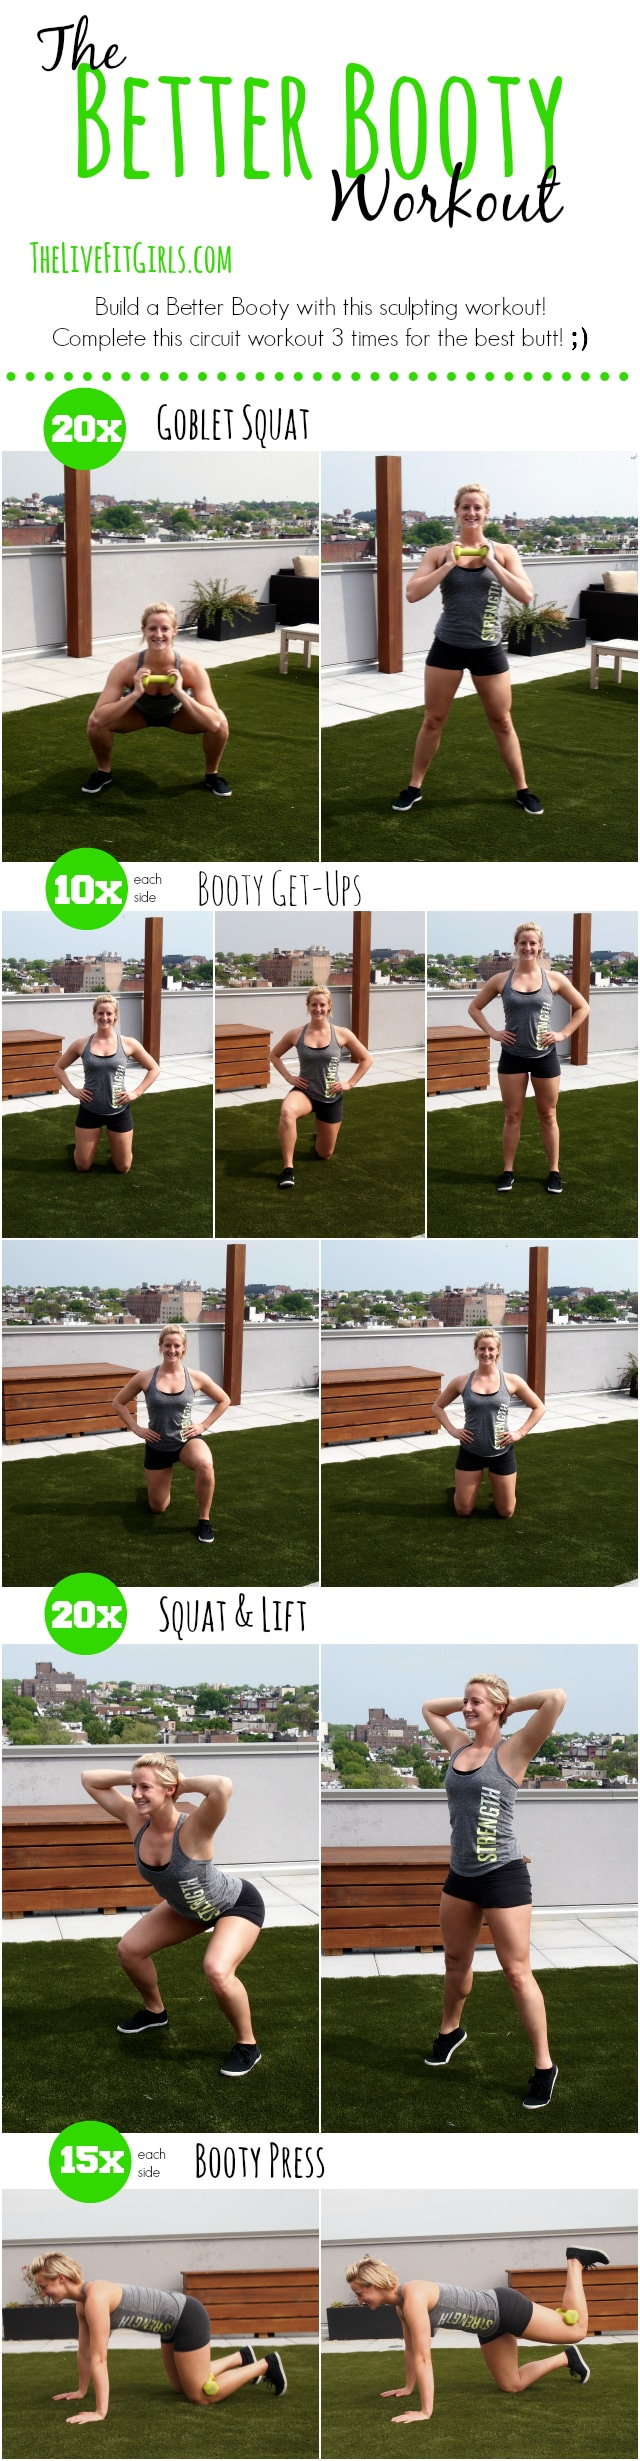 The Better Booty Workout